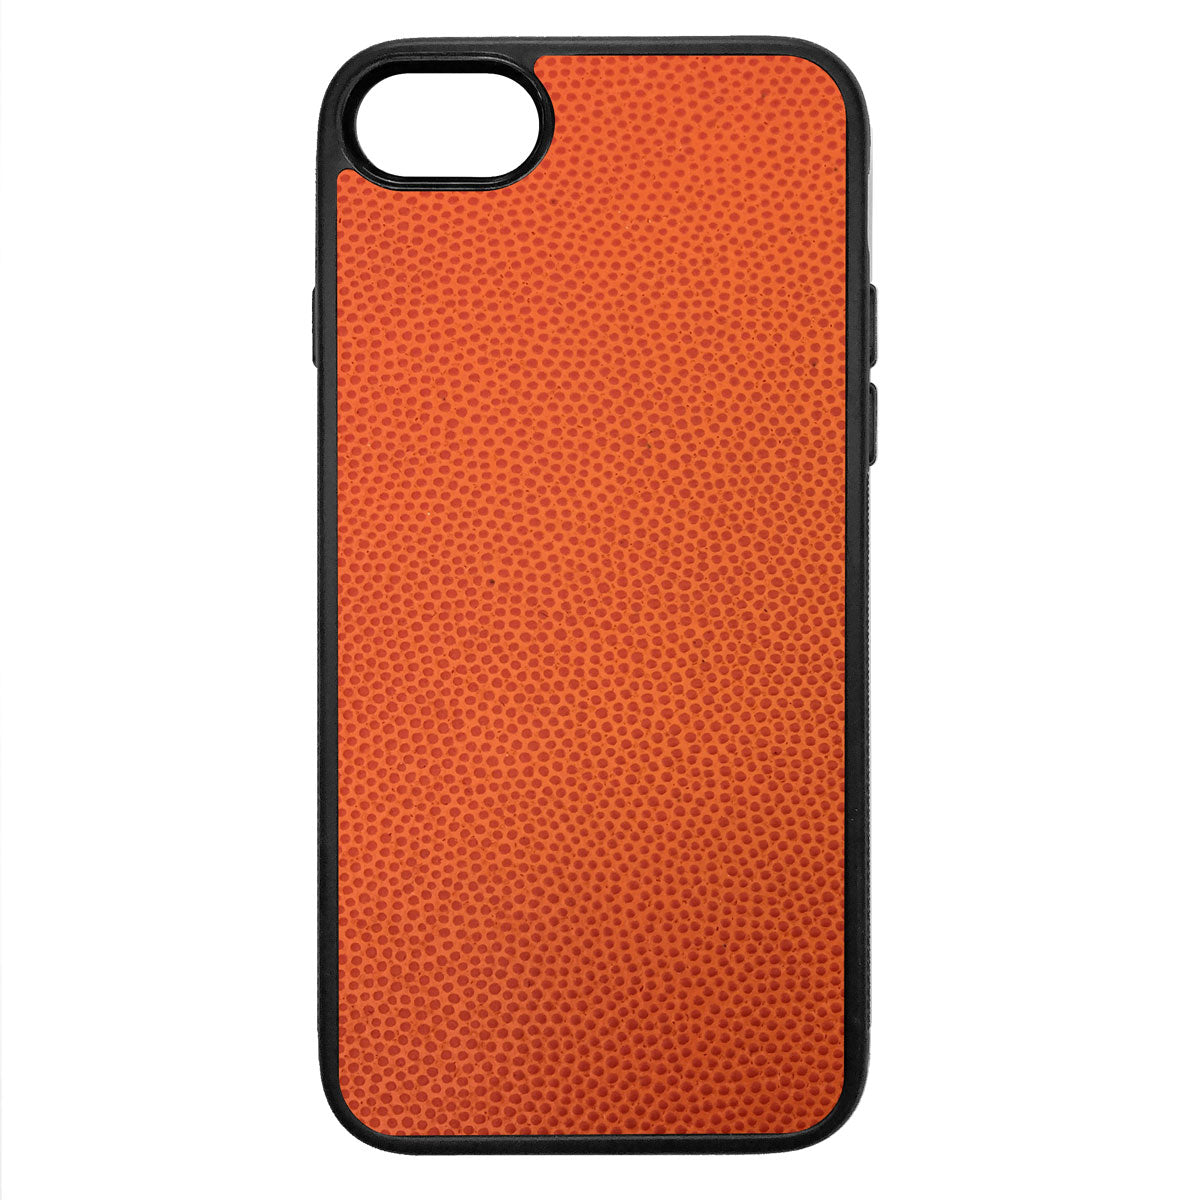 Horween Basketball iPhone 7 Leather Case